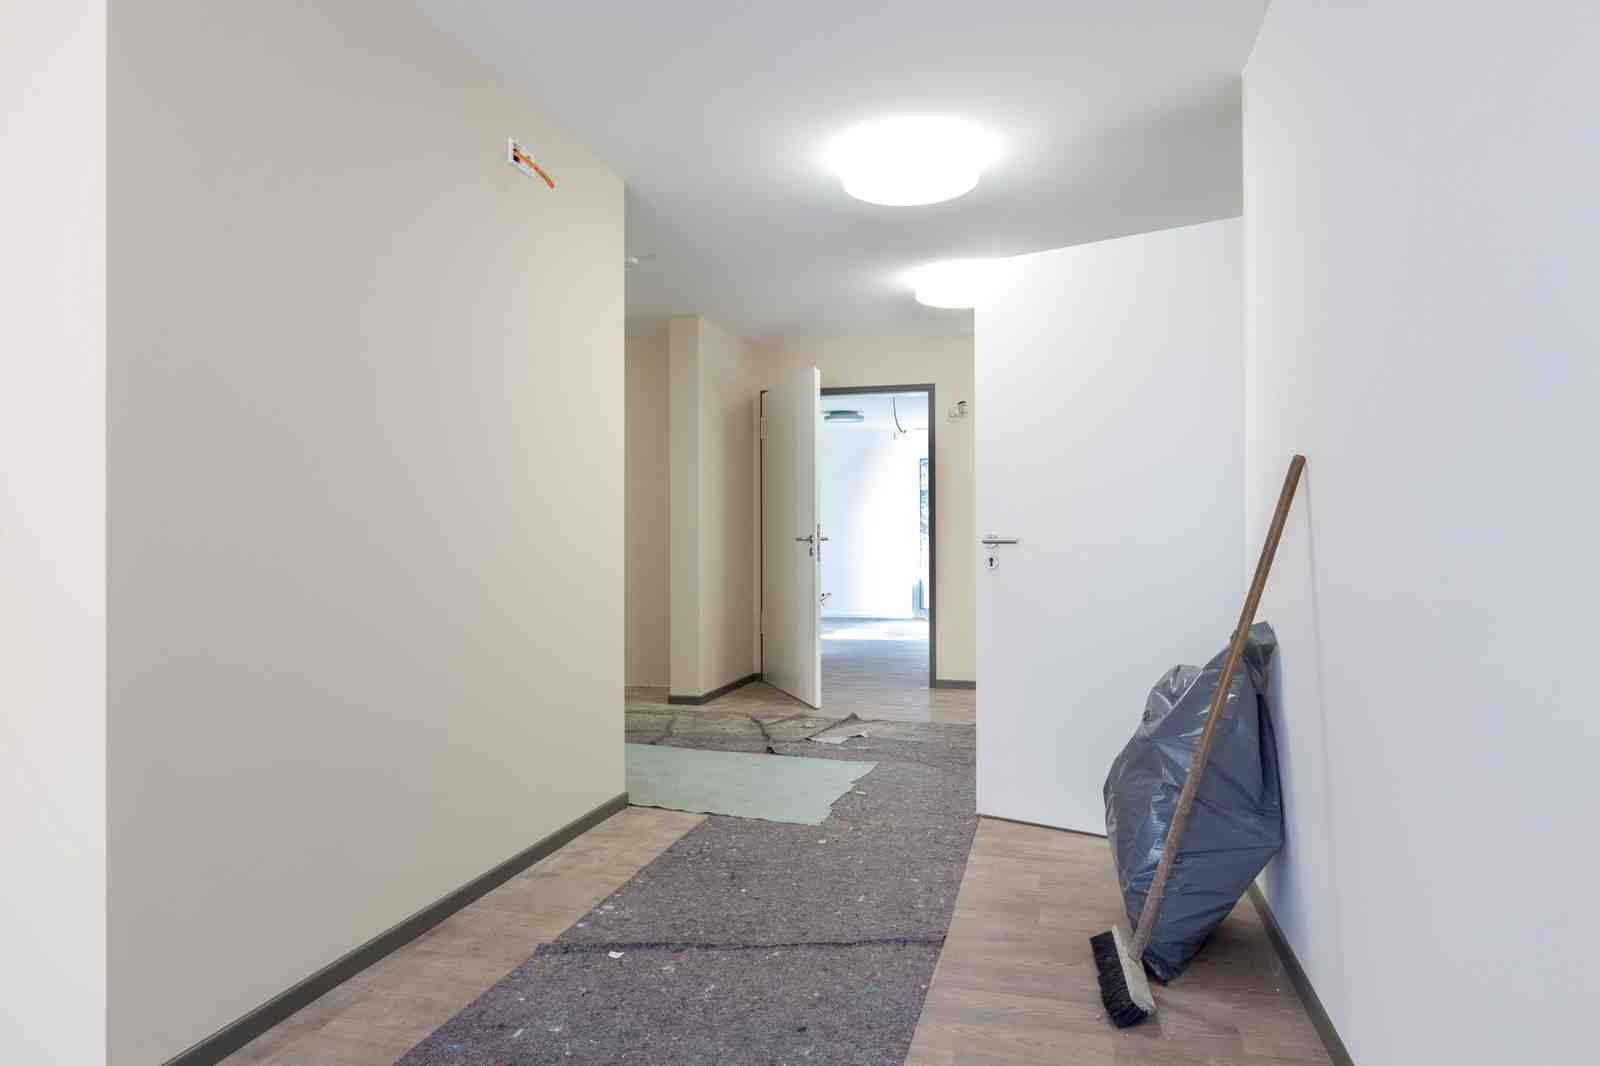 Peinture int rieure r novation r fection travaux de for Decoration interieur peinture simulation